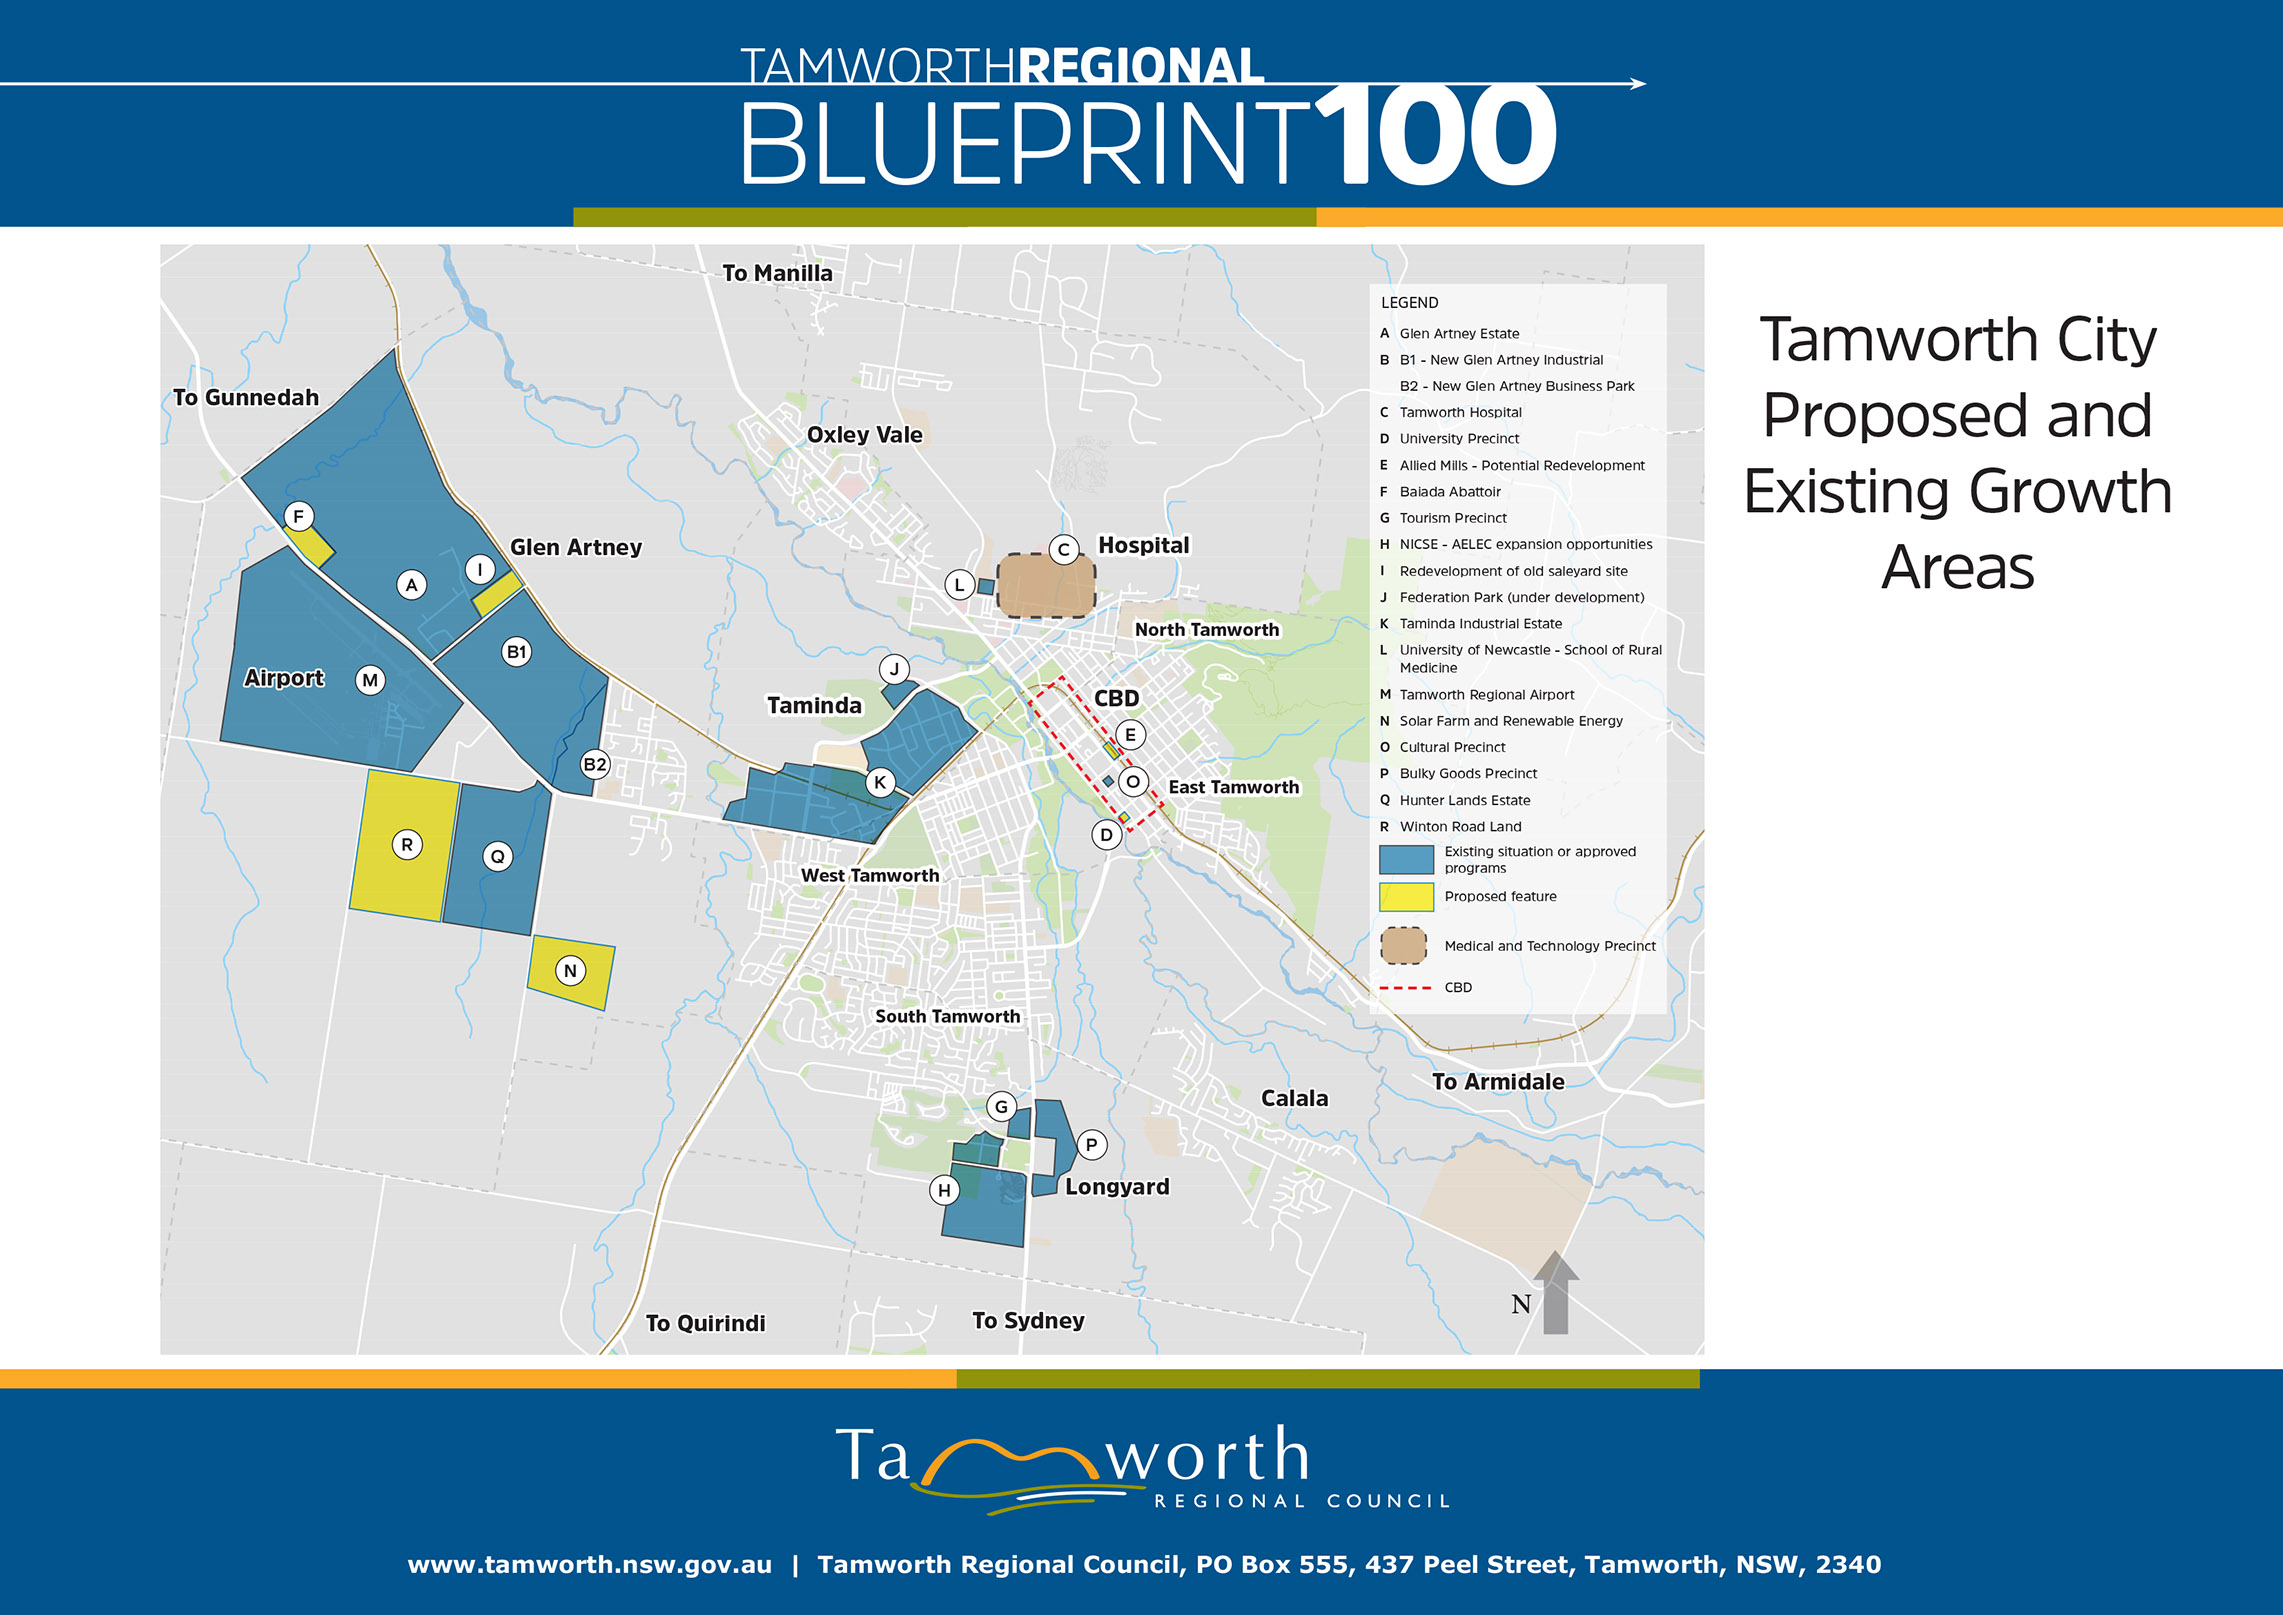 Tamworth City Proposed and Existing Growth Areas